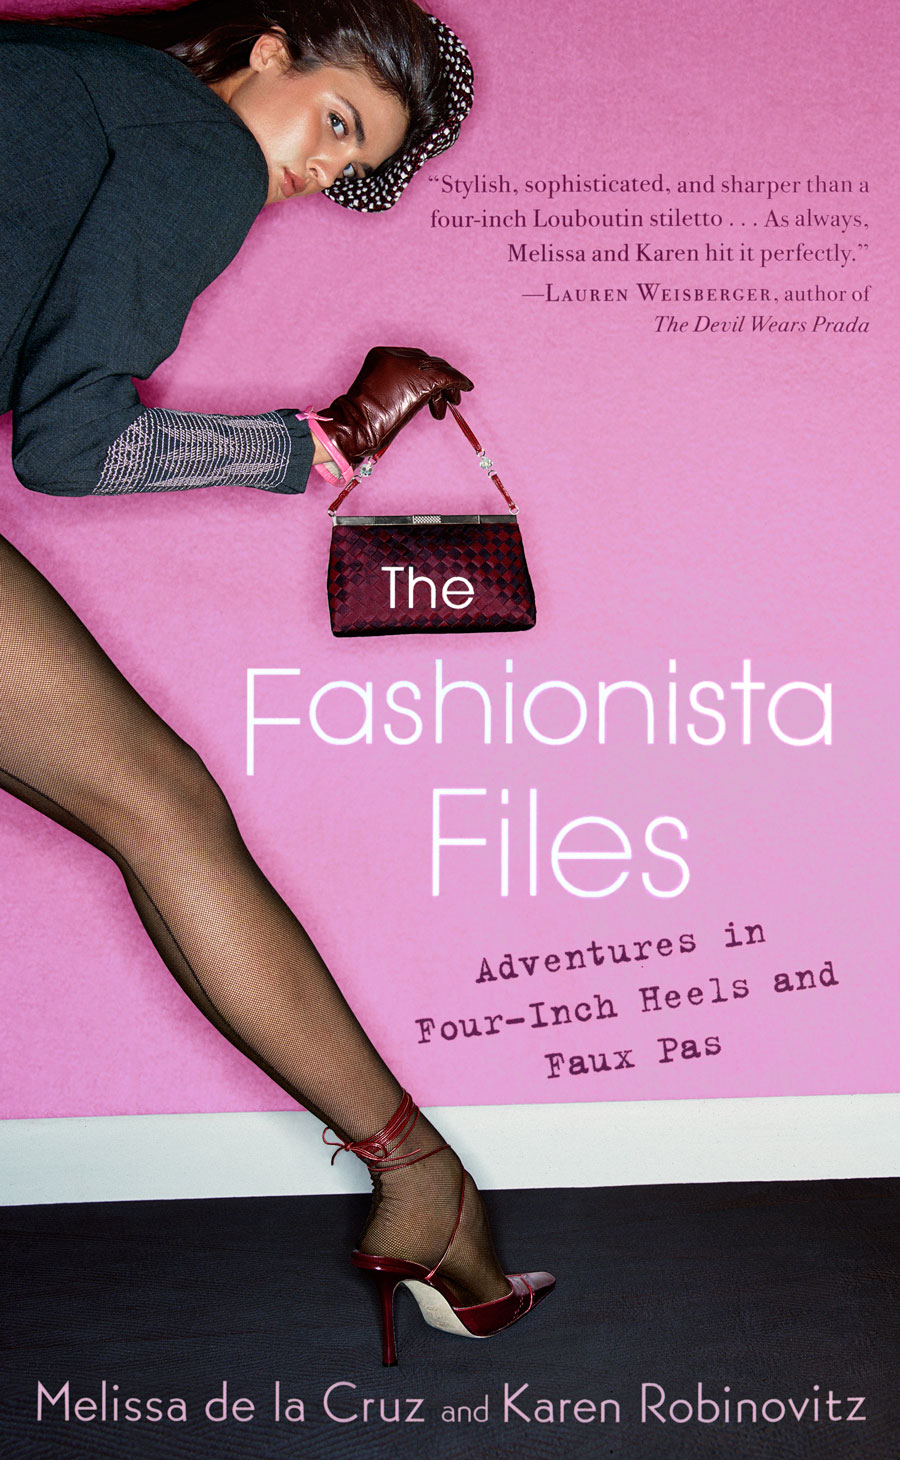 The Fashionista Files